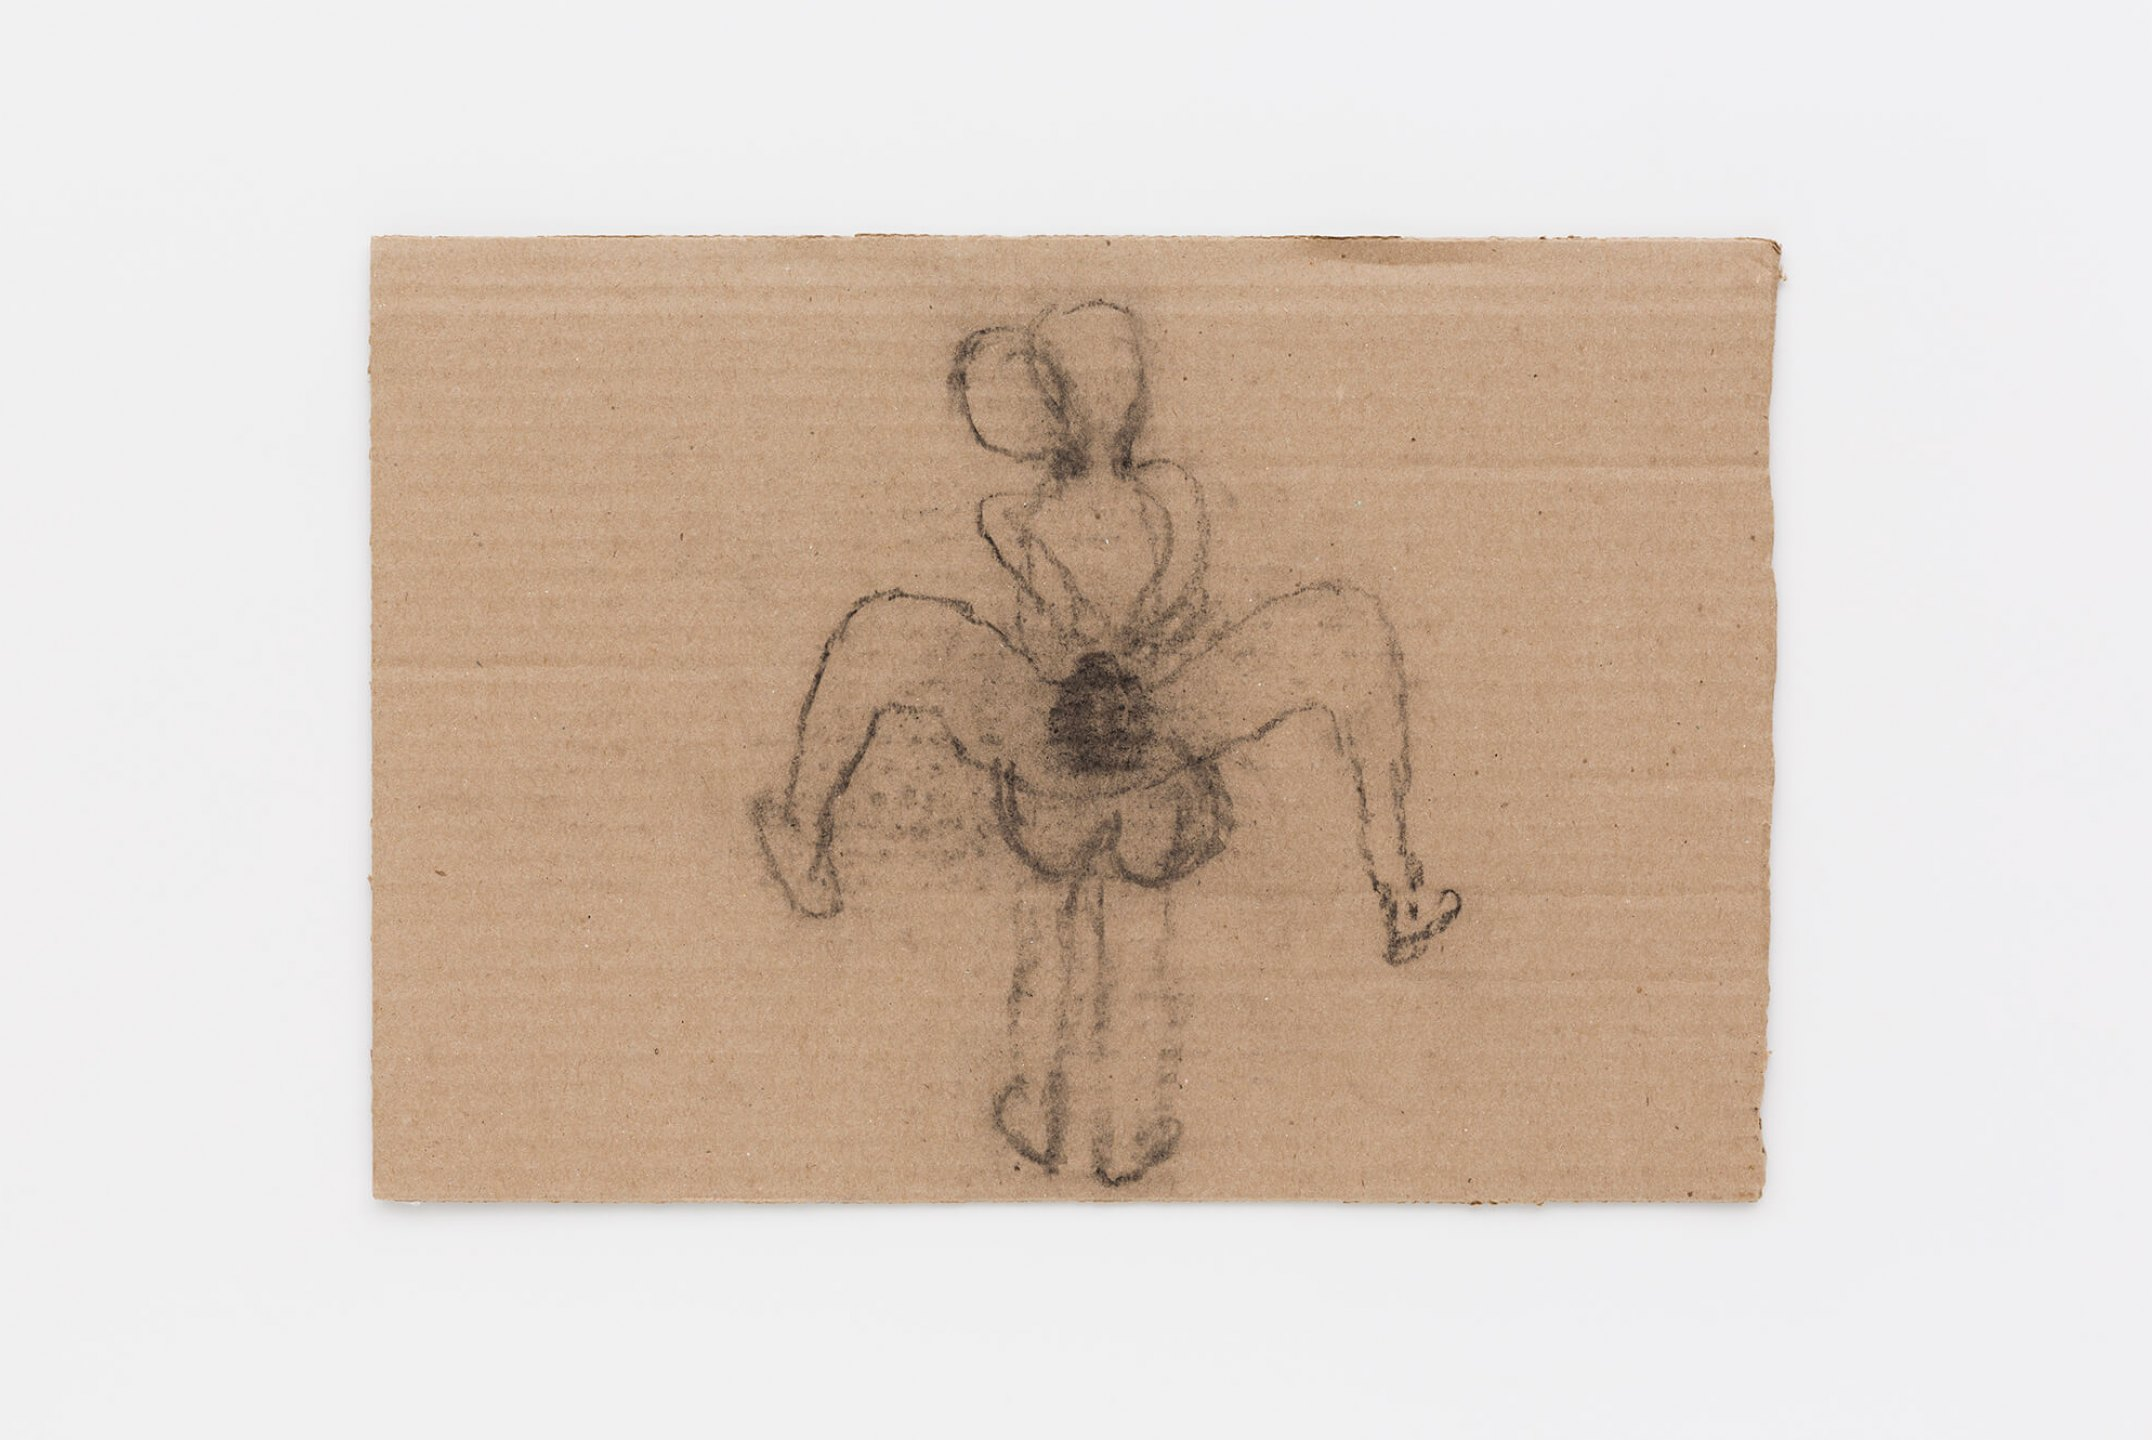 Solange Pessoa, <em>untitled</em>, 2009, pastel on cardboard, 21,6 × 31,3 cm - Mendes Wood DM